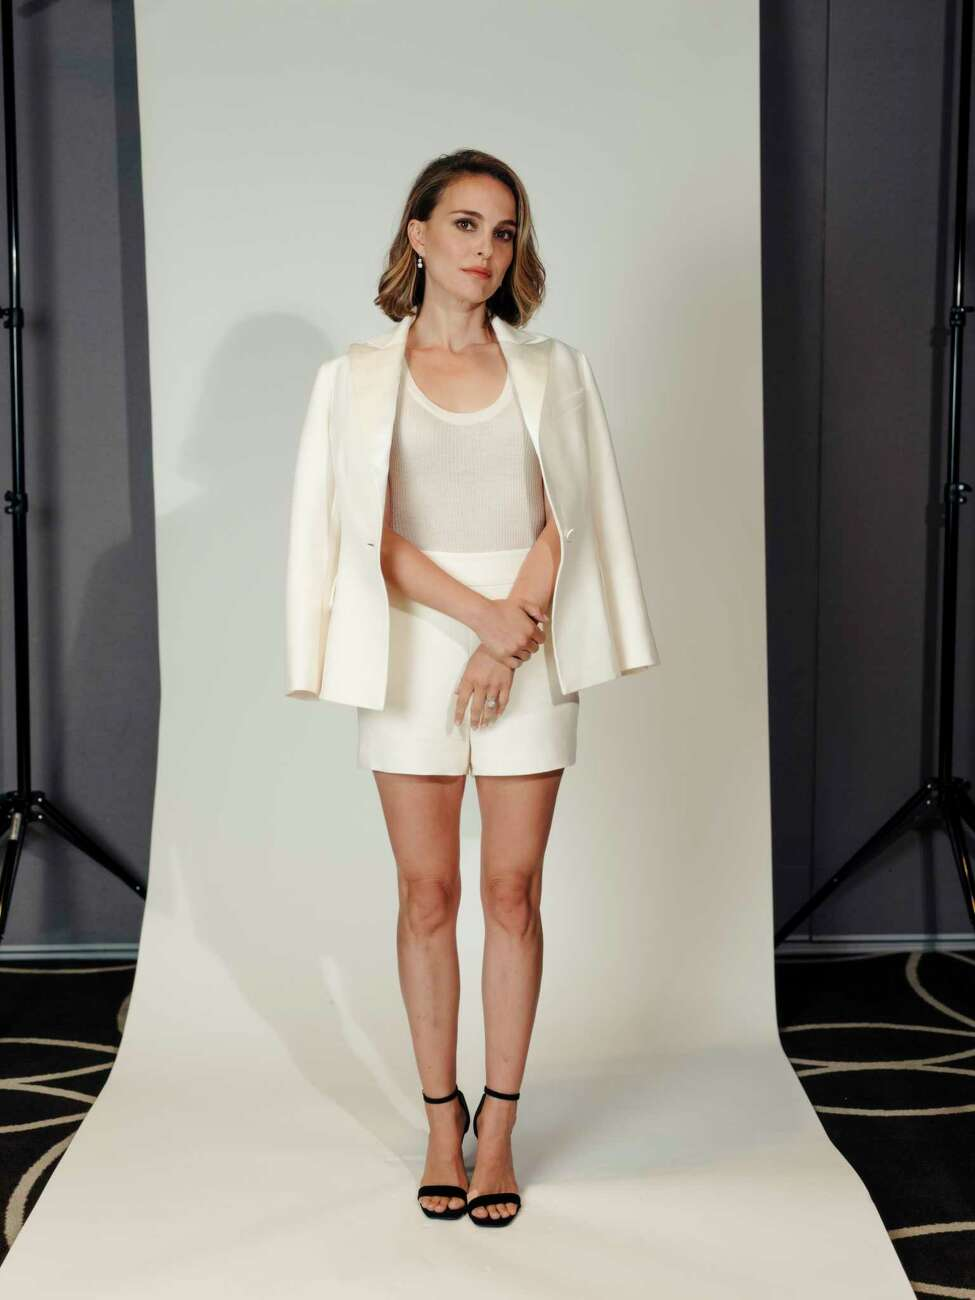 -- PHOTO MOVED IN ADVANCE AND NOT FOR USE - ONLINE OR IN PRINT - BEFORE OCT. 06, 2019. -- Natalie Portman at the W Hollywood in Los Angeles, Calif., Sept. 25, 2019. The actor has finally fulfilled a childhood dream, sort of, by climbing into a spacesuit to play a tormented astronaut in the new film a€œLucy in the Sky.a€ And soon shea€™ll wield the hammer as female Thor. (Rozette Rago/The New York Times)